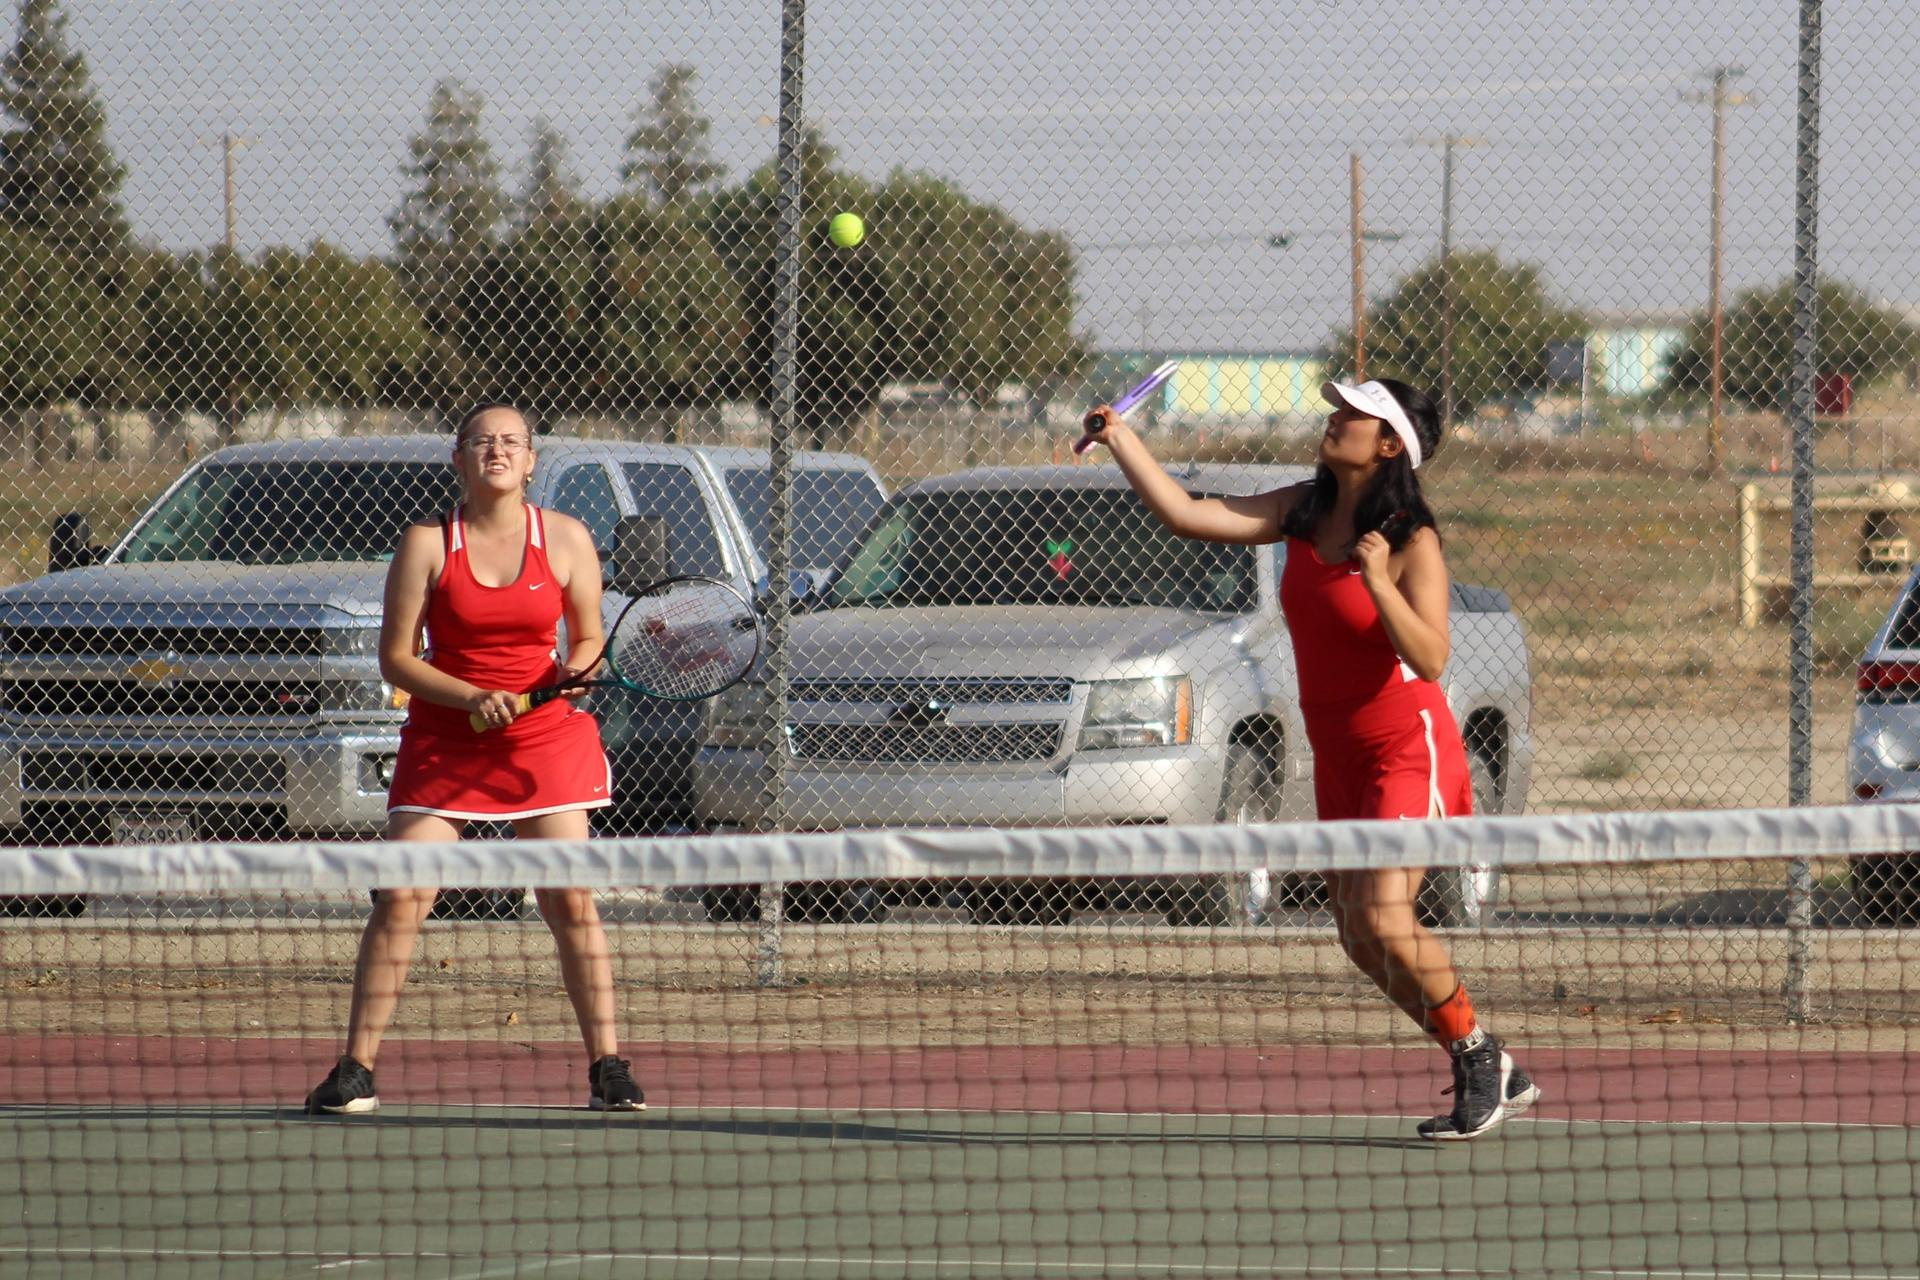 Chowchilla Girls playing tennis